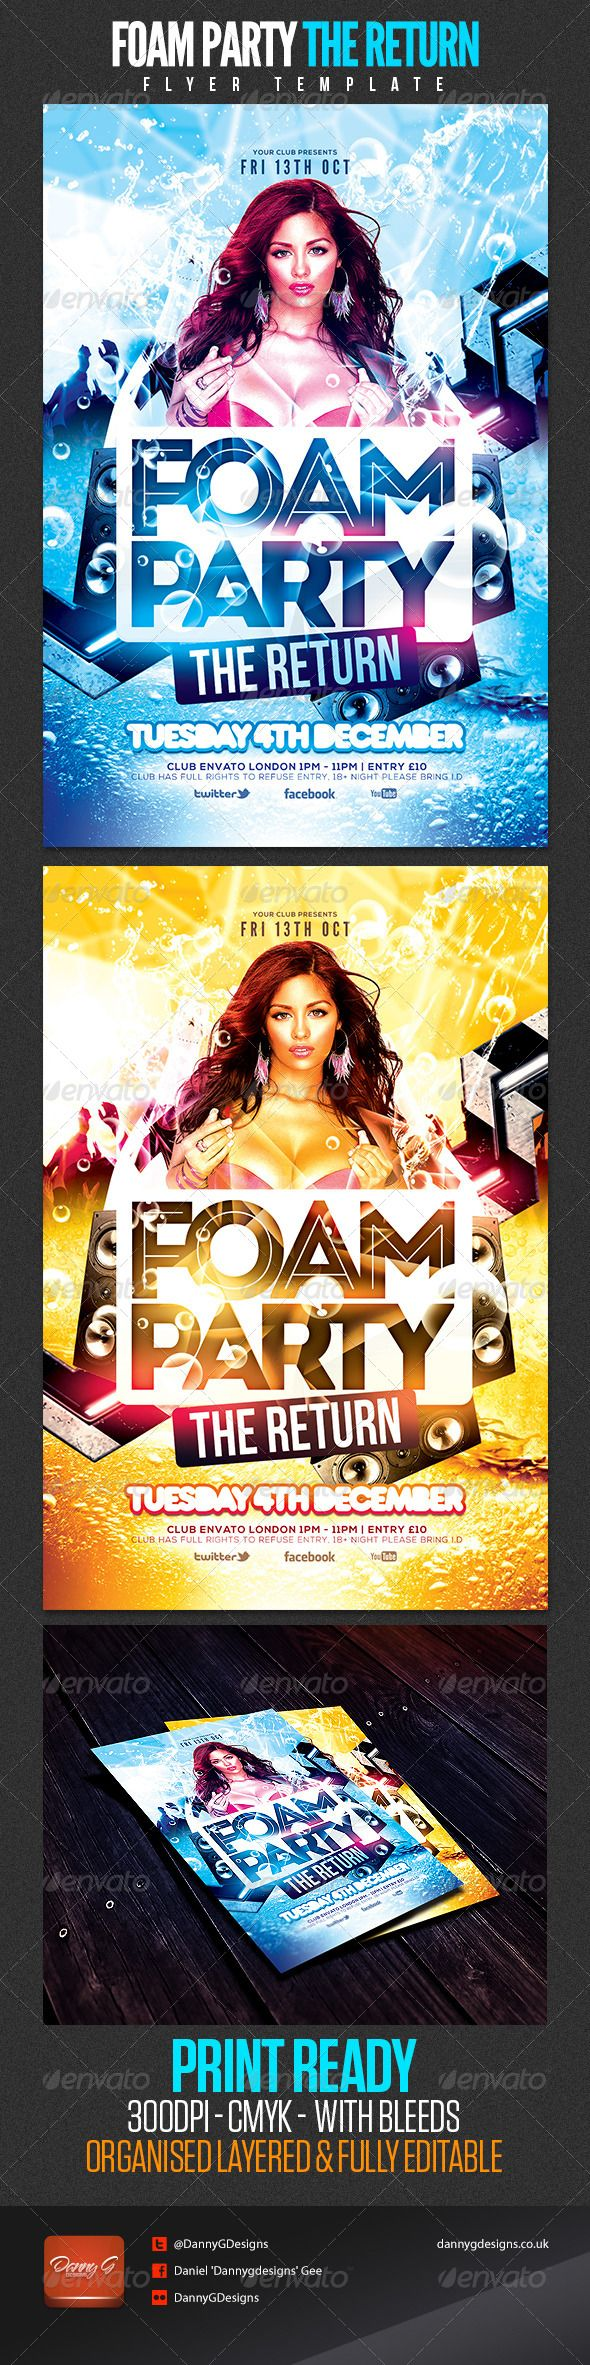 "Foam Party The Return Flyer Template #GraphicRiver Foam Party Flyer Template The download file contains: 2 4×6 print ready .psd files - Original Colour blue - Orange Version Flyer size: 4×6 (4.25×6.25"" with bleeds) Download all fonts used here: .fontsquirrel /fonts/nexa .fontsquirrel /fonts/League-Gothic?q=League+Gothic .dafont /bebas-neue.font fontfabric /intro-free-font/ .dafont /rns-baruta-black.font Print Ready: CMYK, 300 DPI .PSD Layered, very easy to modify. well-..."